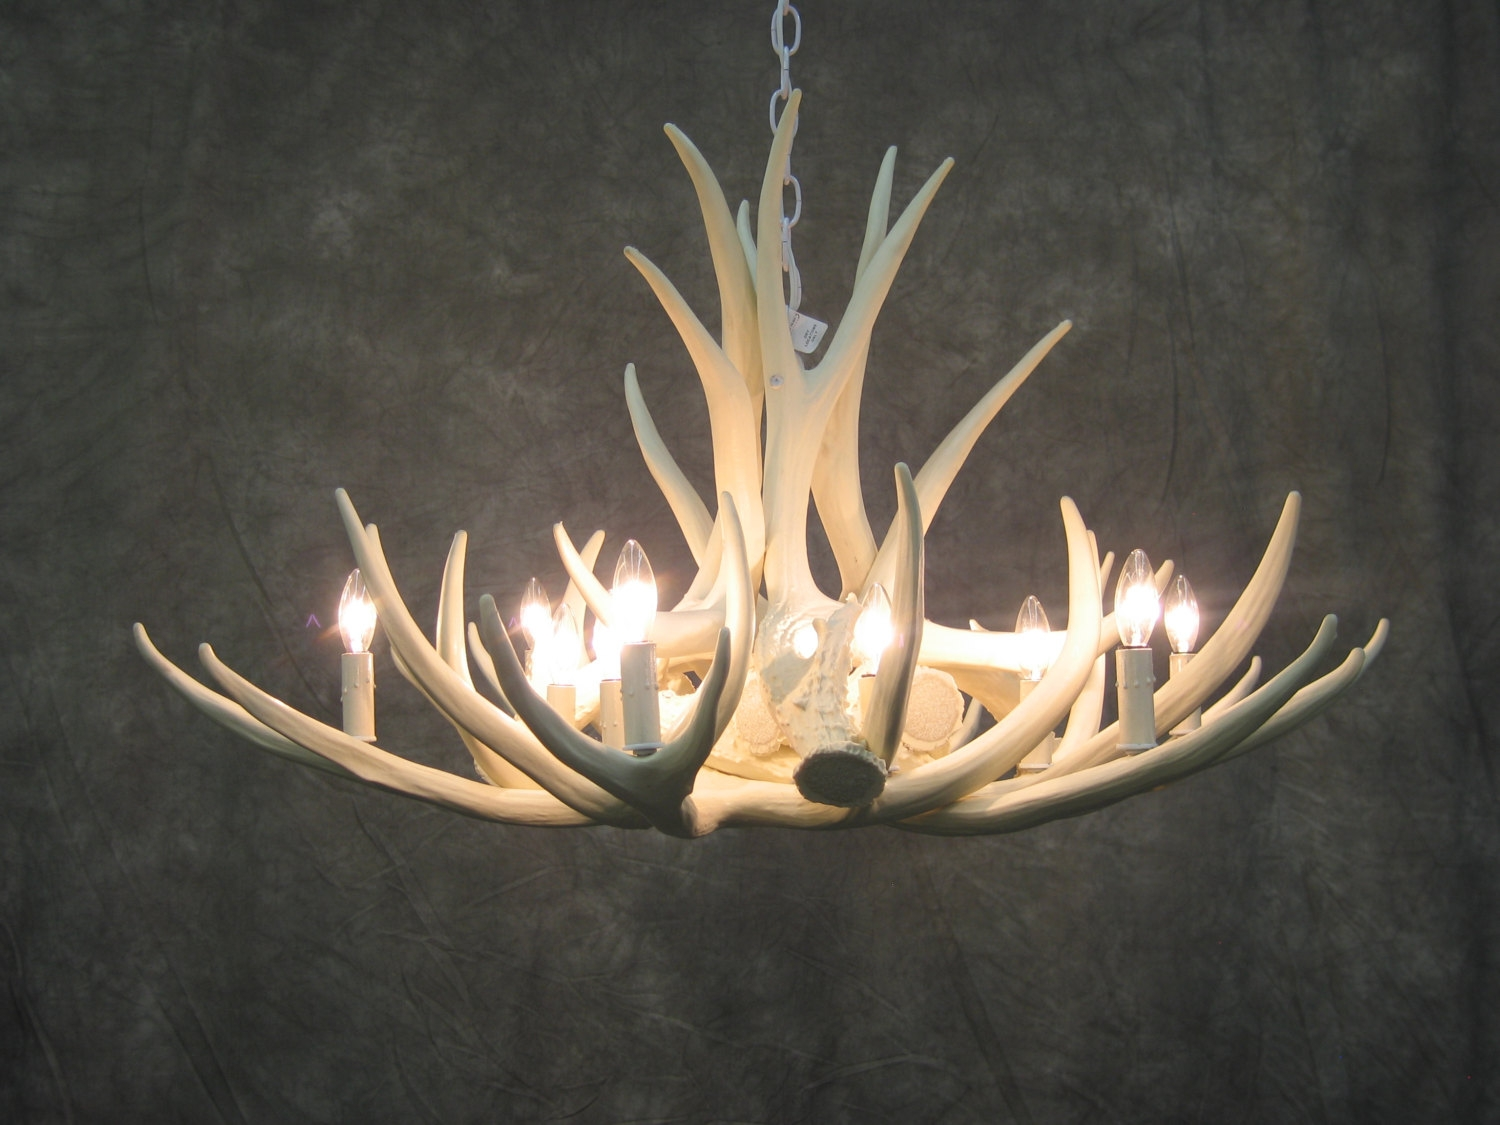 Lamp Deer Horn Chandelier With Authentic Look For Your Lighting With Modern Antler Chandelier (#5 of 12)